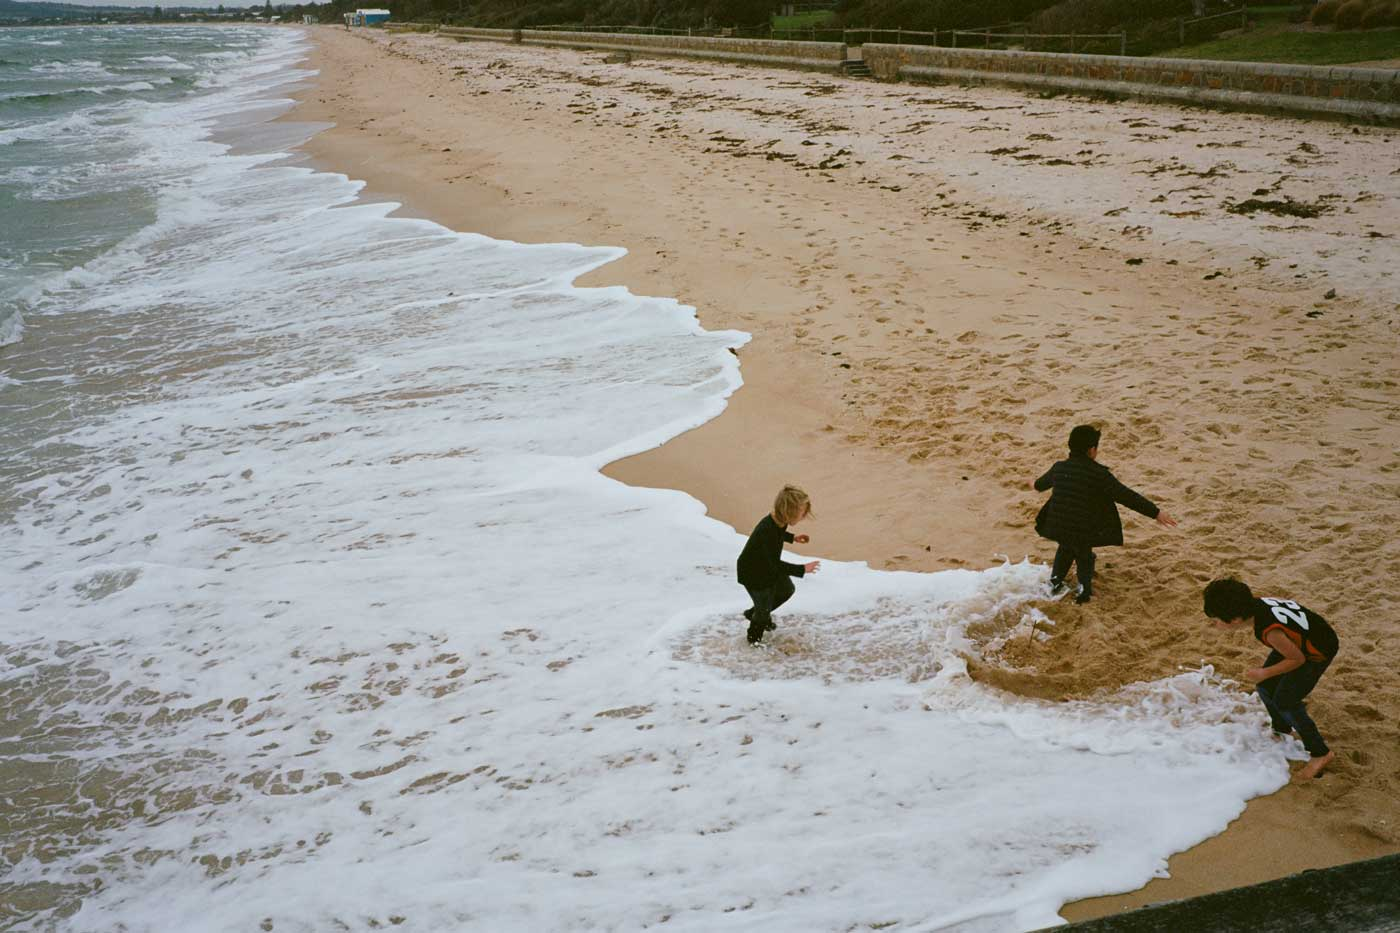 Leica-Summicron-50mm-50-f2-Rigid-Type-2-II-lens-review-kodak-ektar-100-kids-playing-sand-waves-running-happy-dromana-australia-melbourne